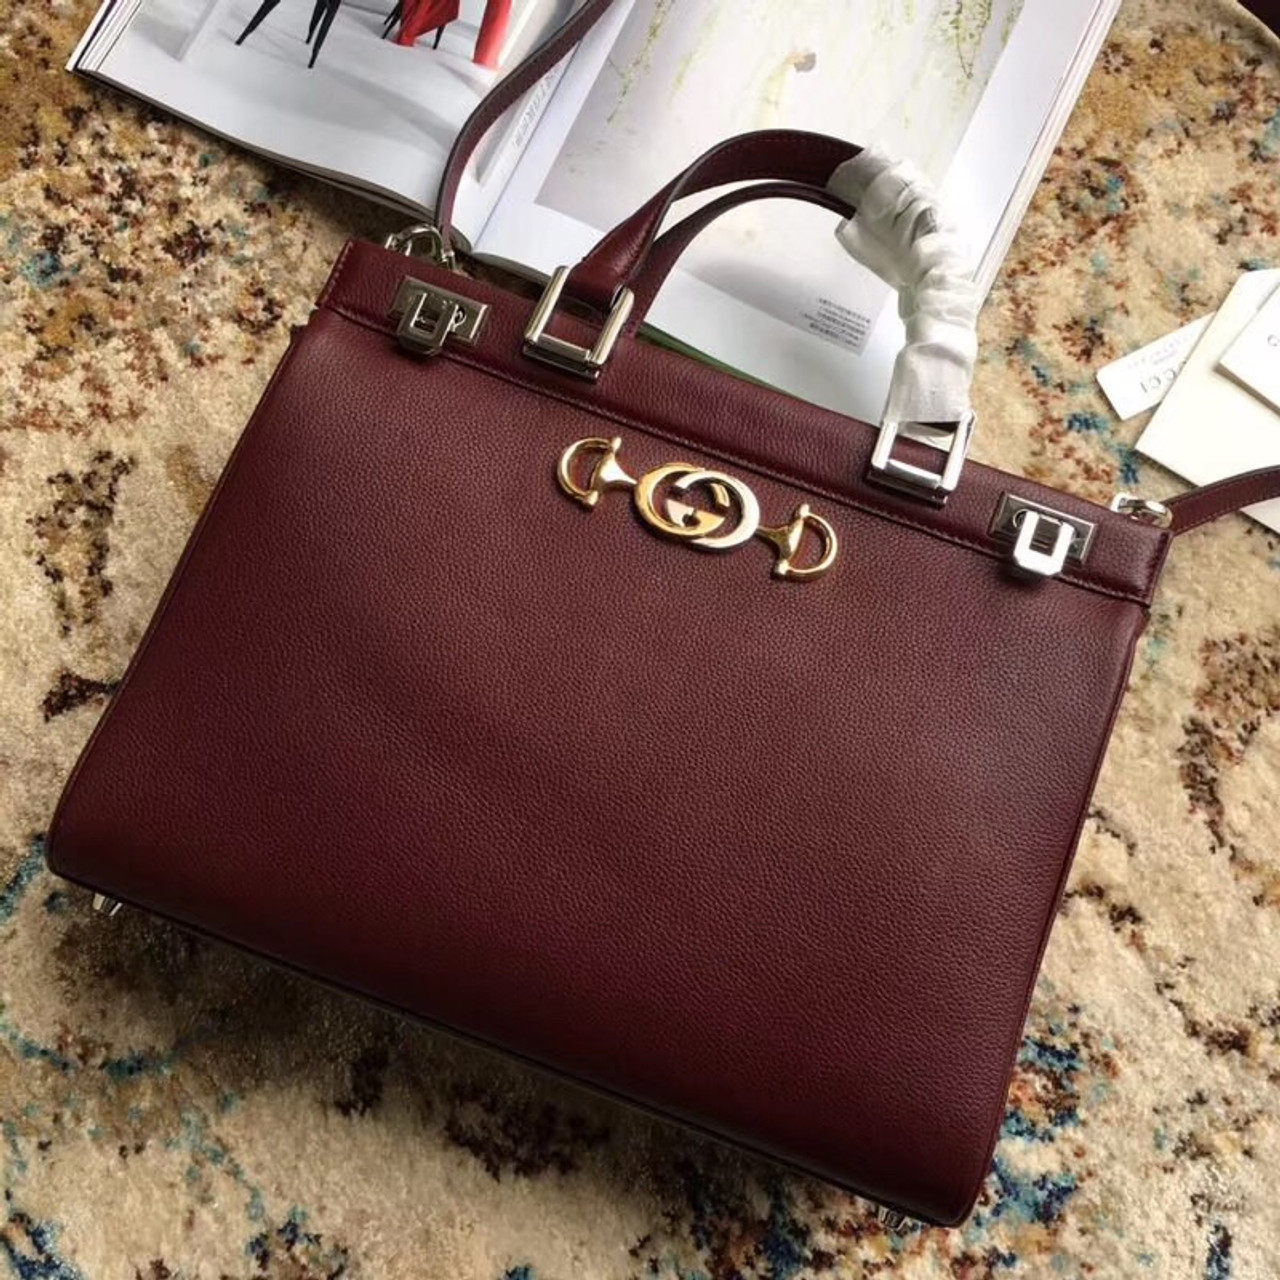 91b8f35523f6 Gucci Zumi grainy leather medium top handle bag Burgundy - Bella ...